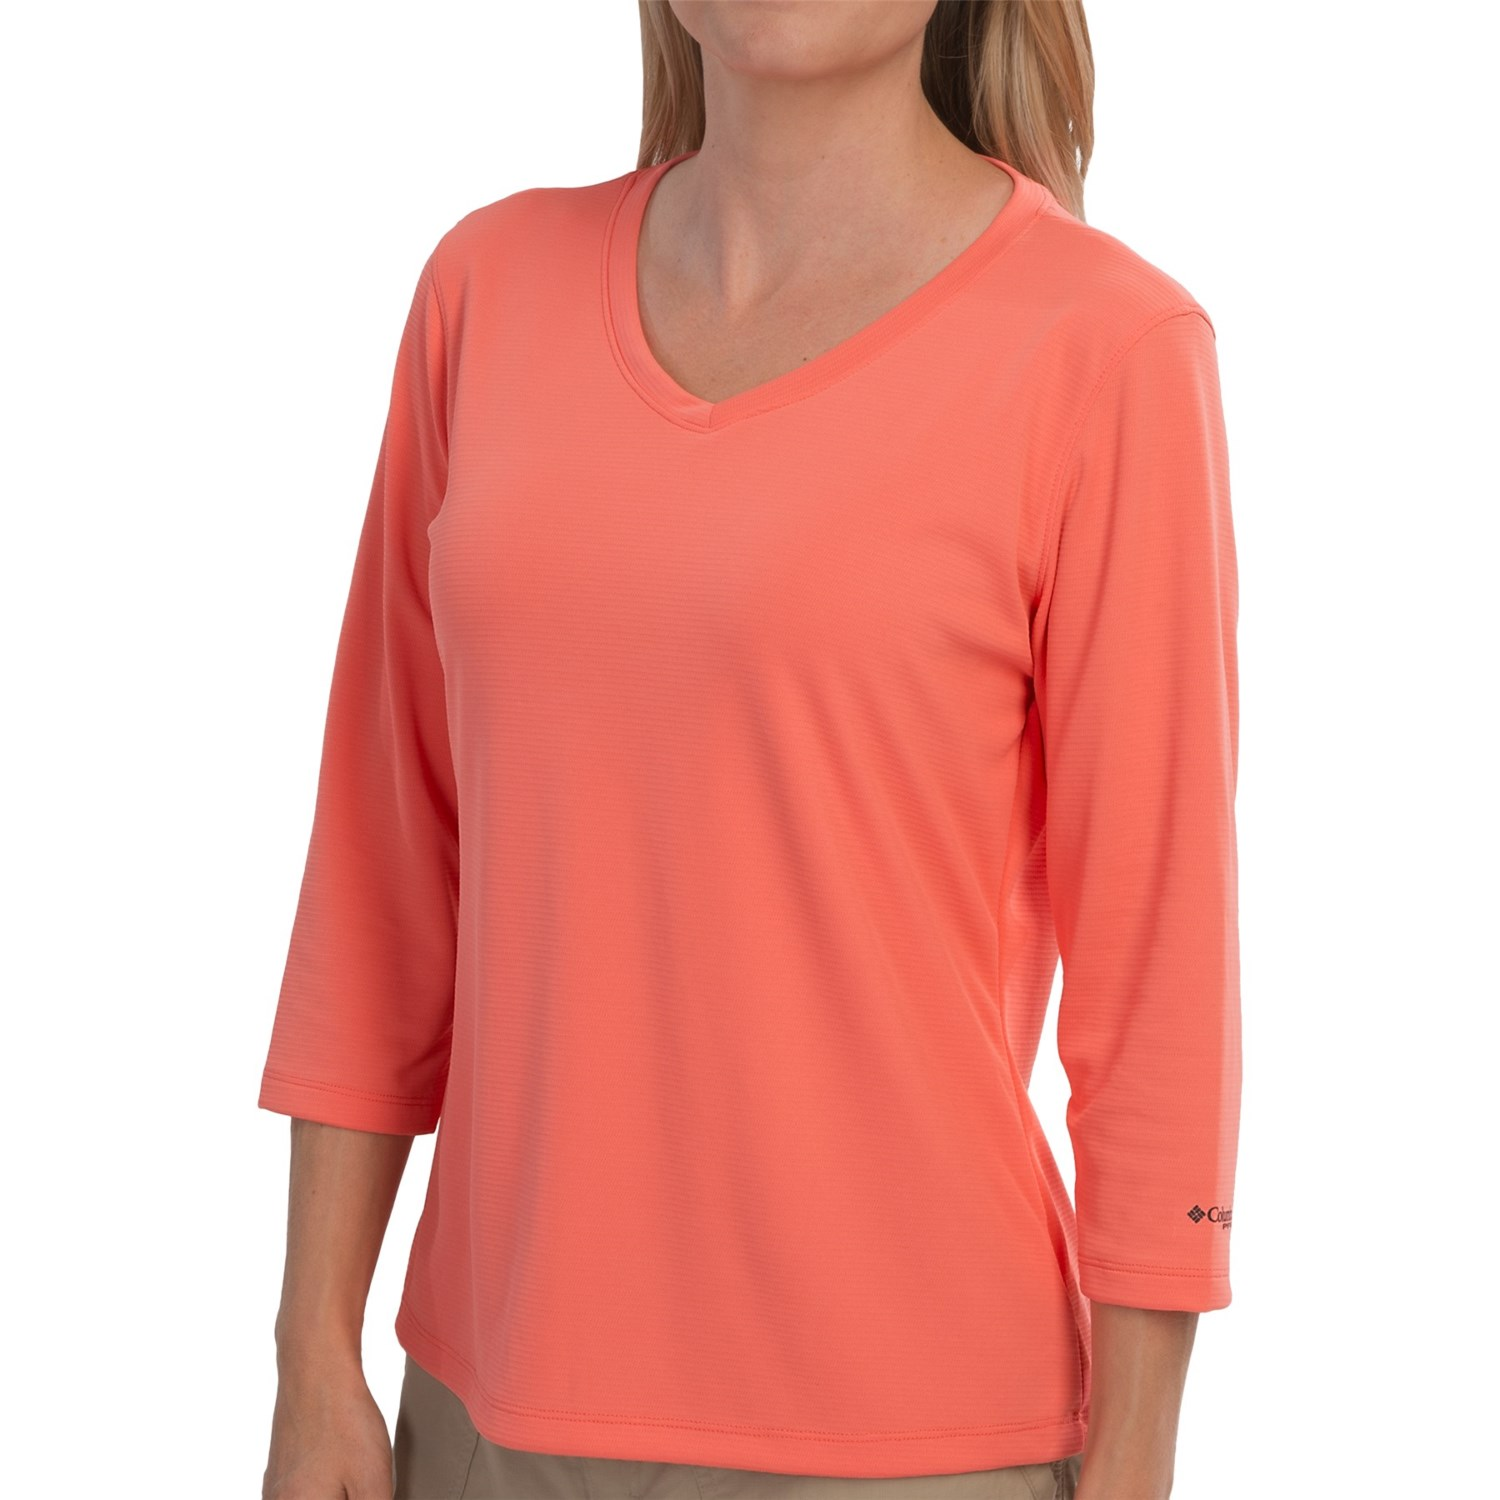 Columbia sportswear truckee river pfg shirt for women for Columbia shirts womens pfg